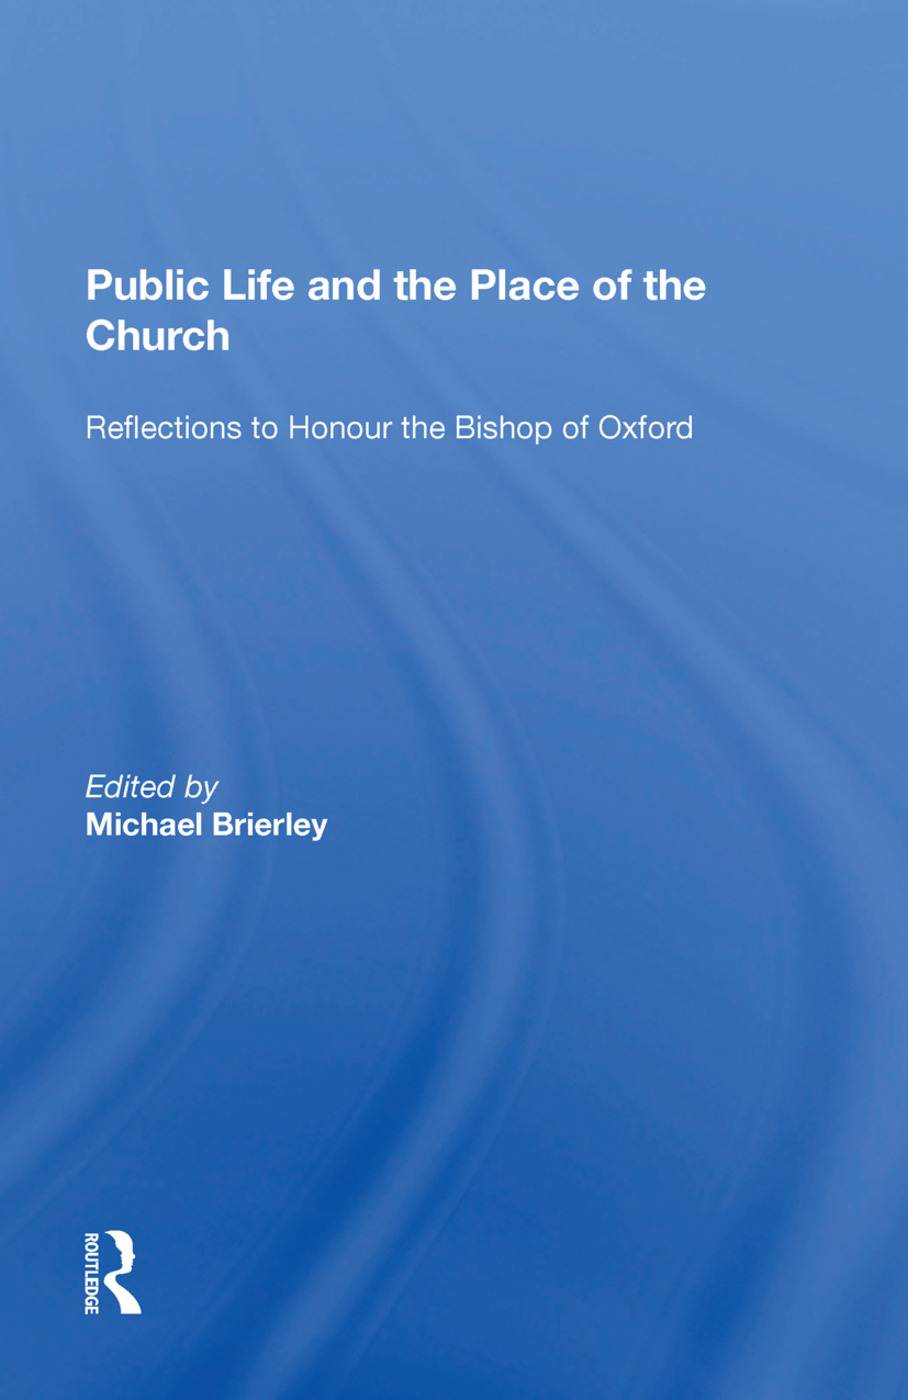 Public Life and the Place of the Church